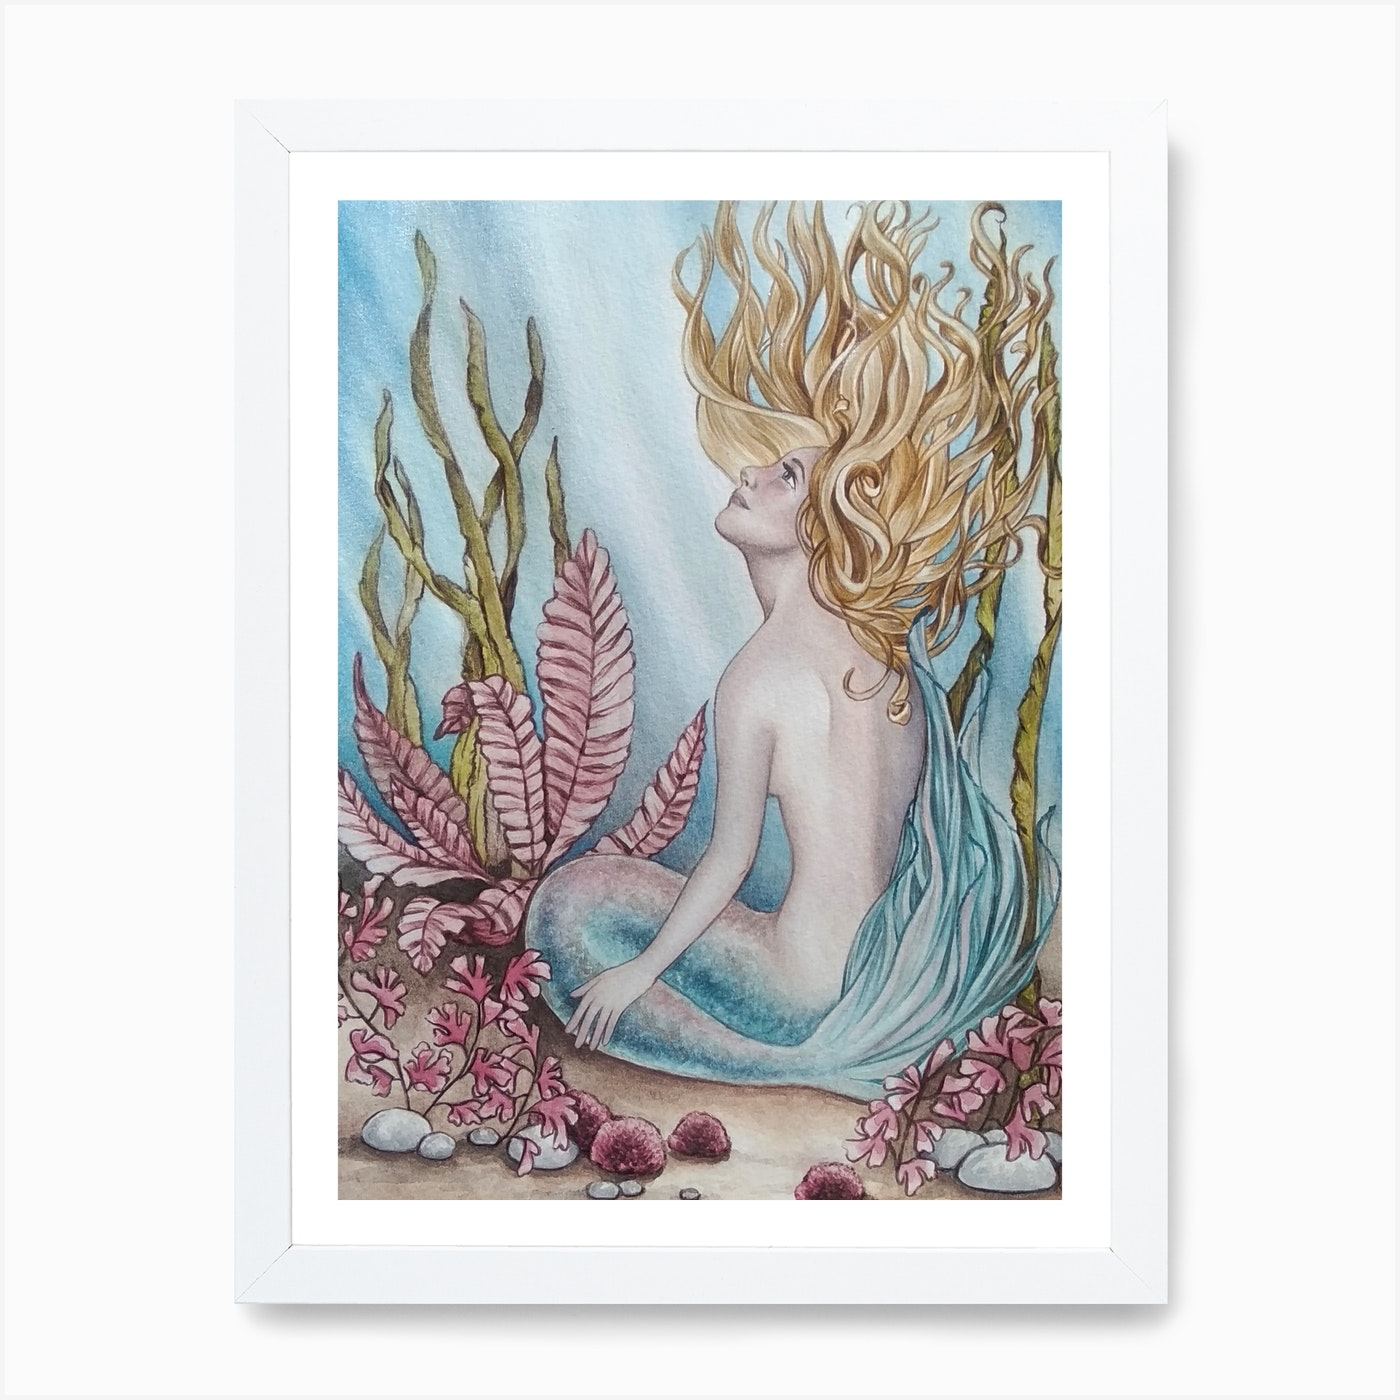 Little Mermaid Art Print By Veronica Valere Art Fy